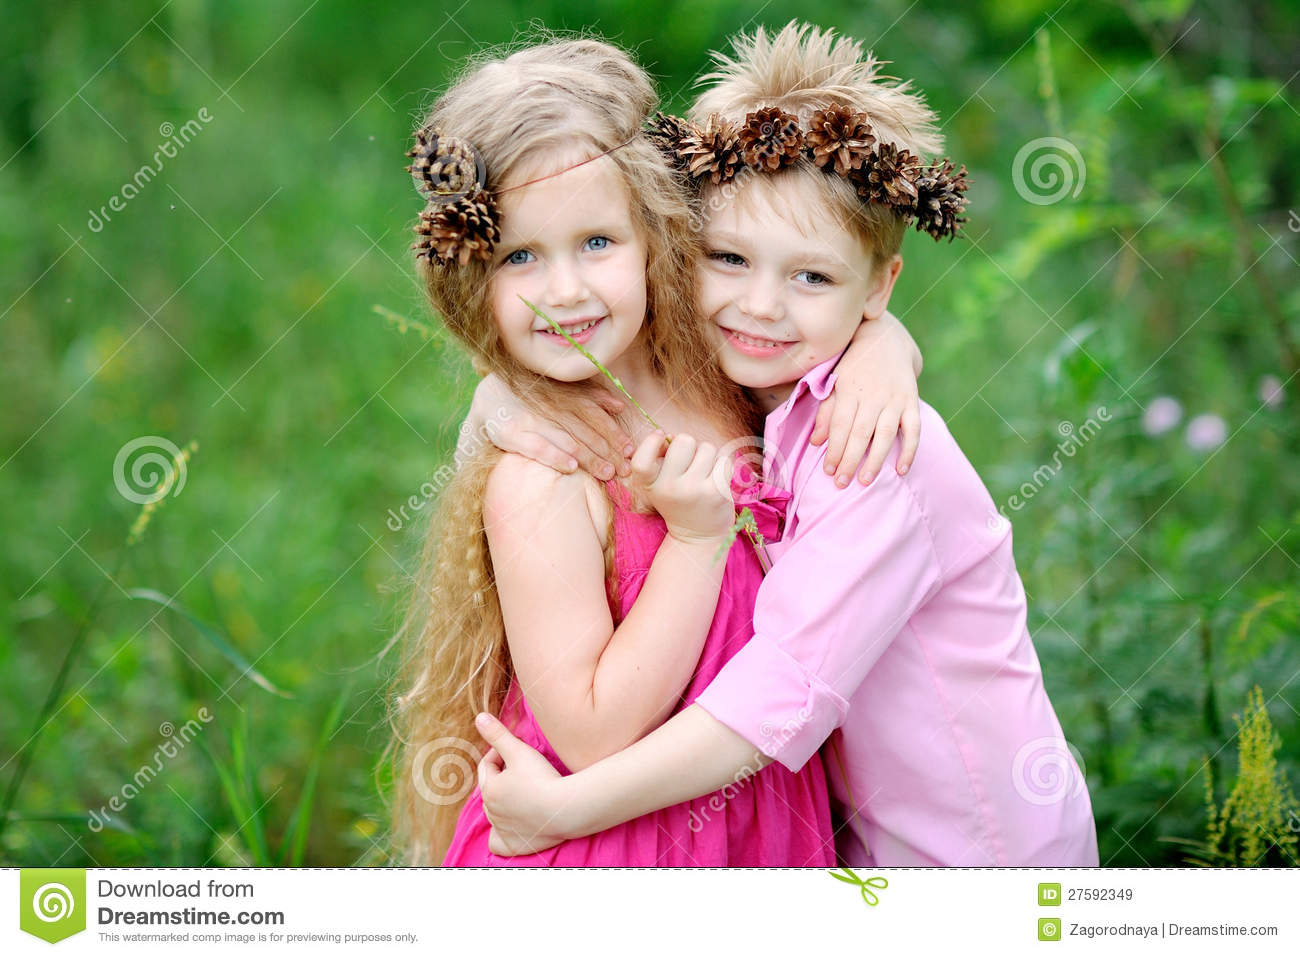 Boy And Girl Hug Wallpaper Download Portrait Of Little Boys And Girls Royalty Free Stock